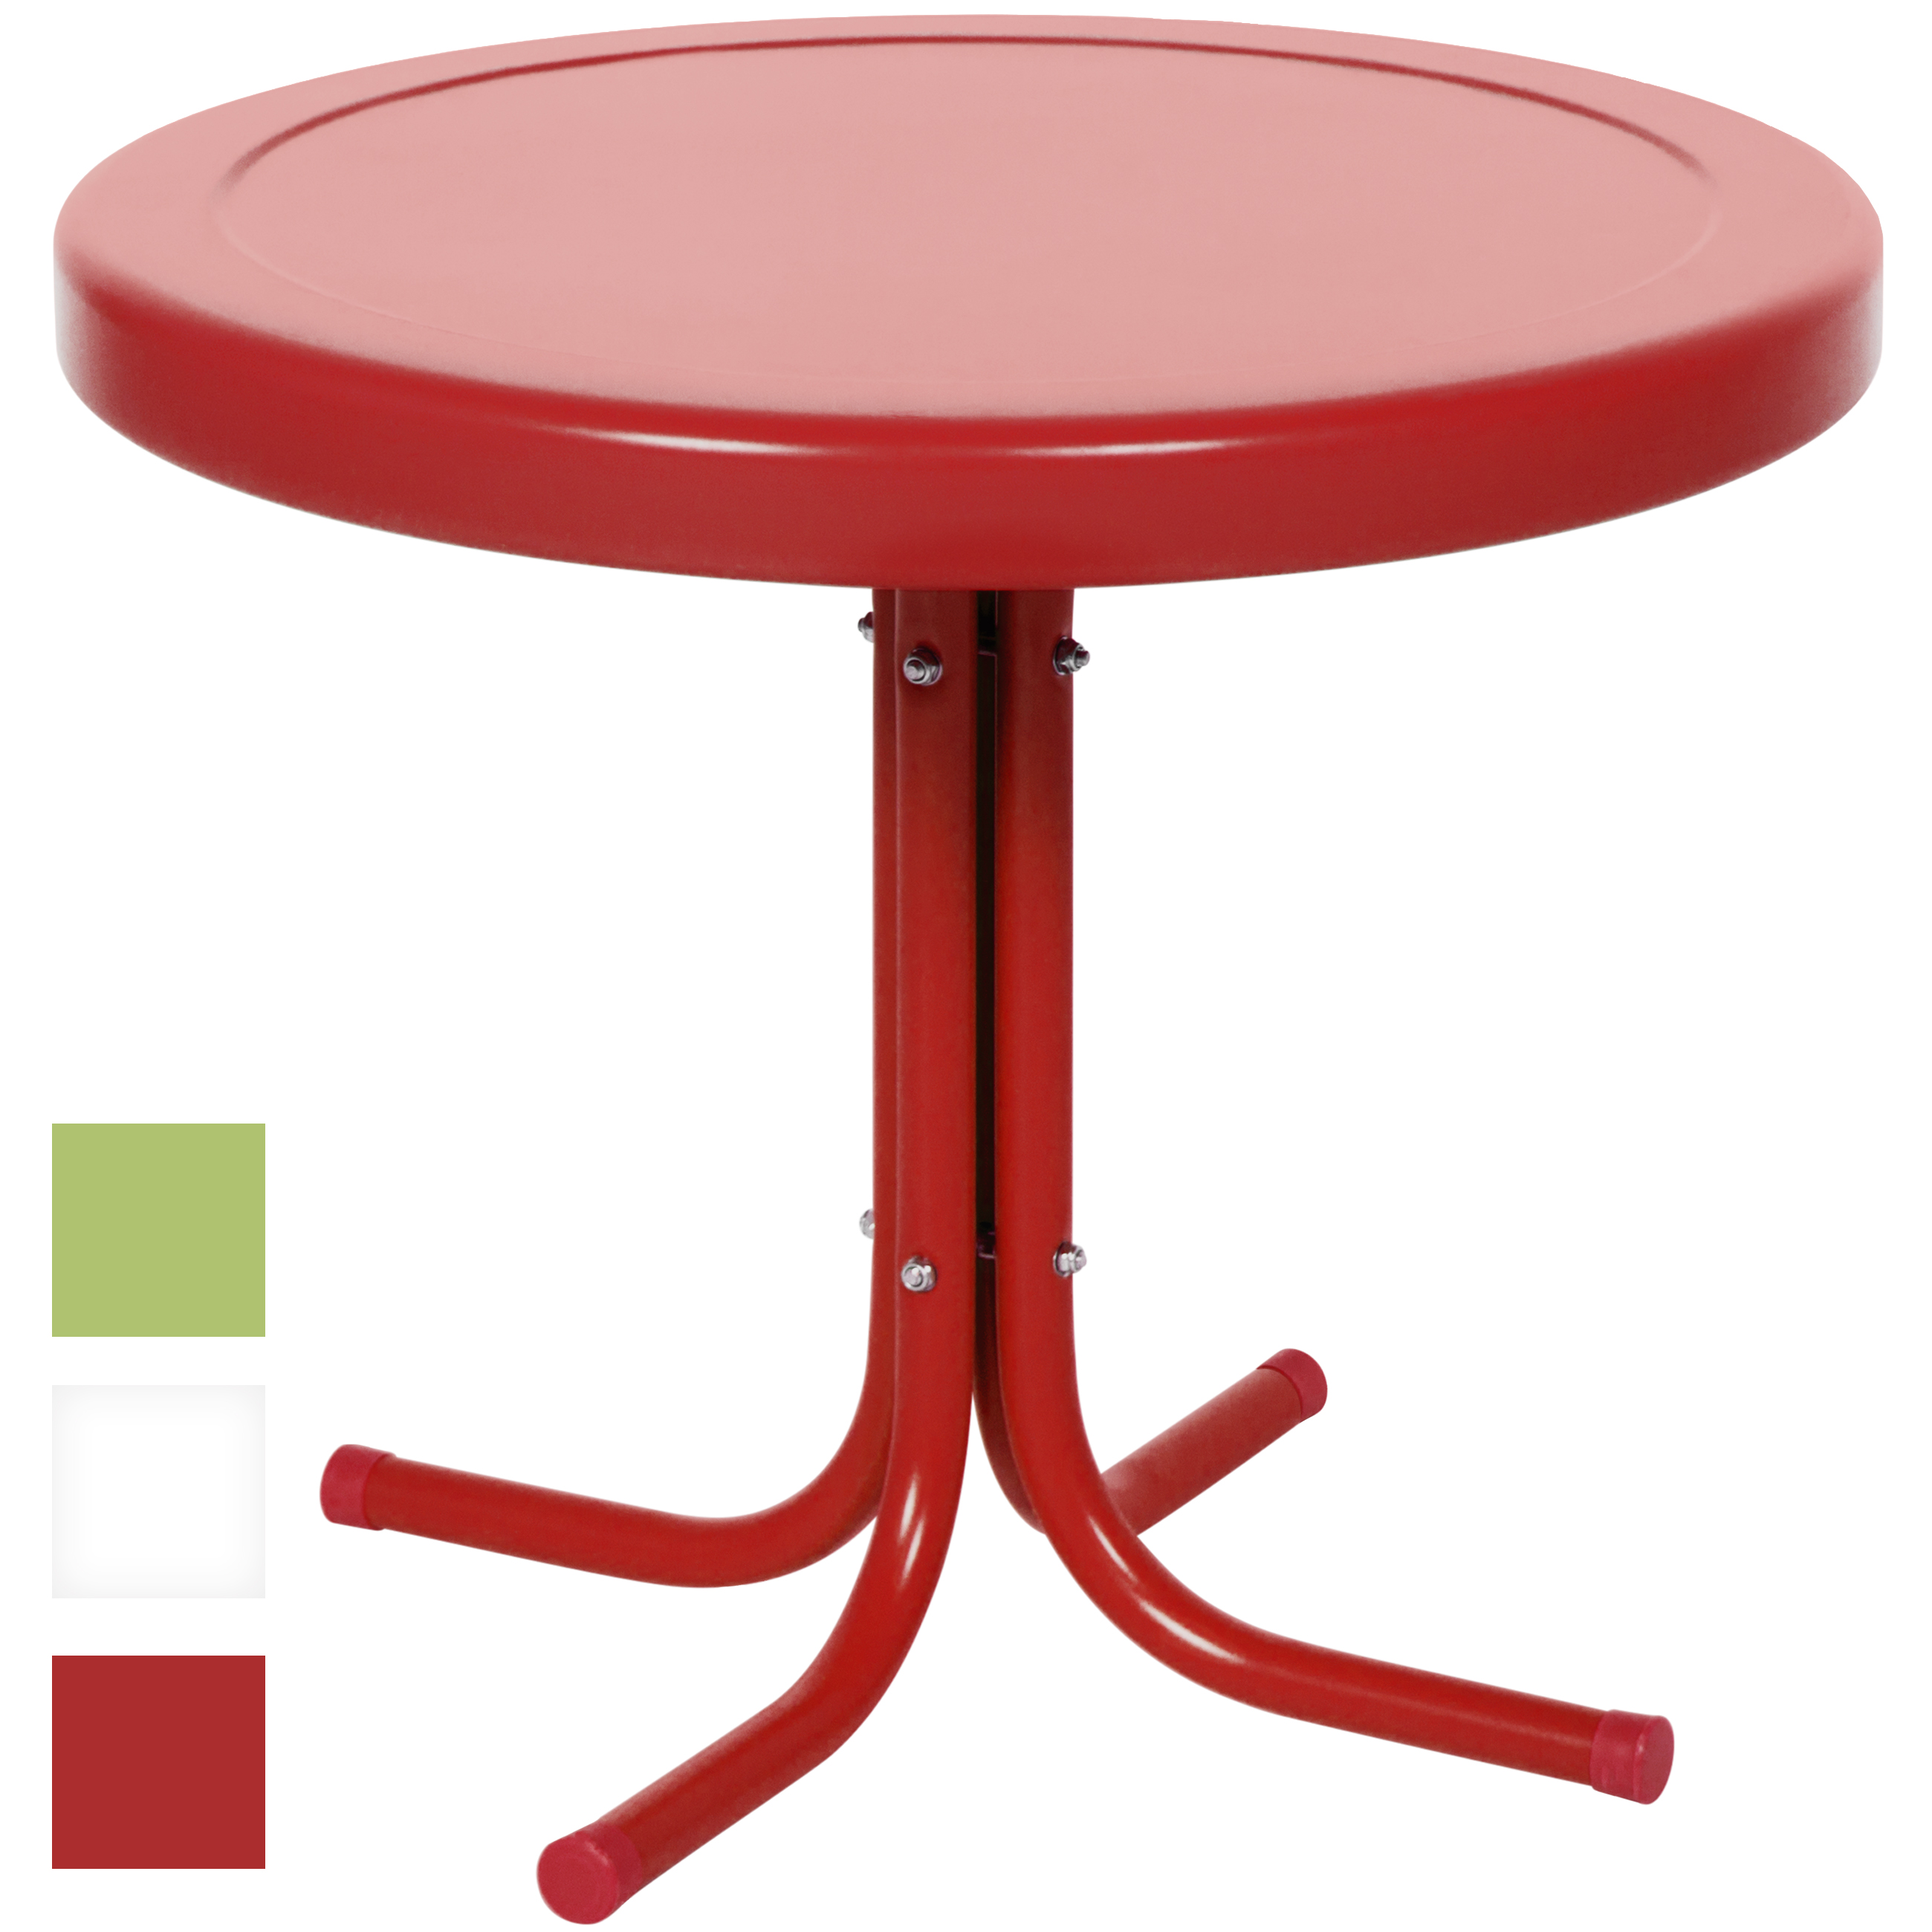 Best Choice Products 22in Modern Round Metal Side Table w/ UV and Weather Resistant Finish - Red